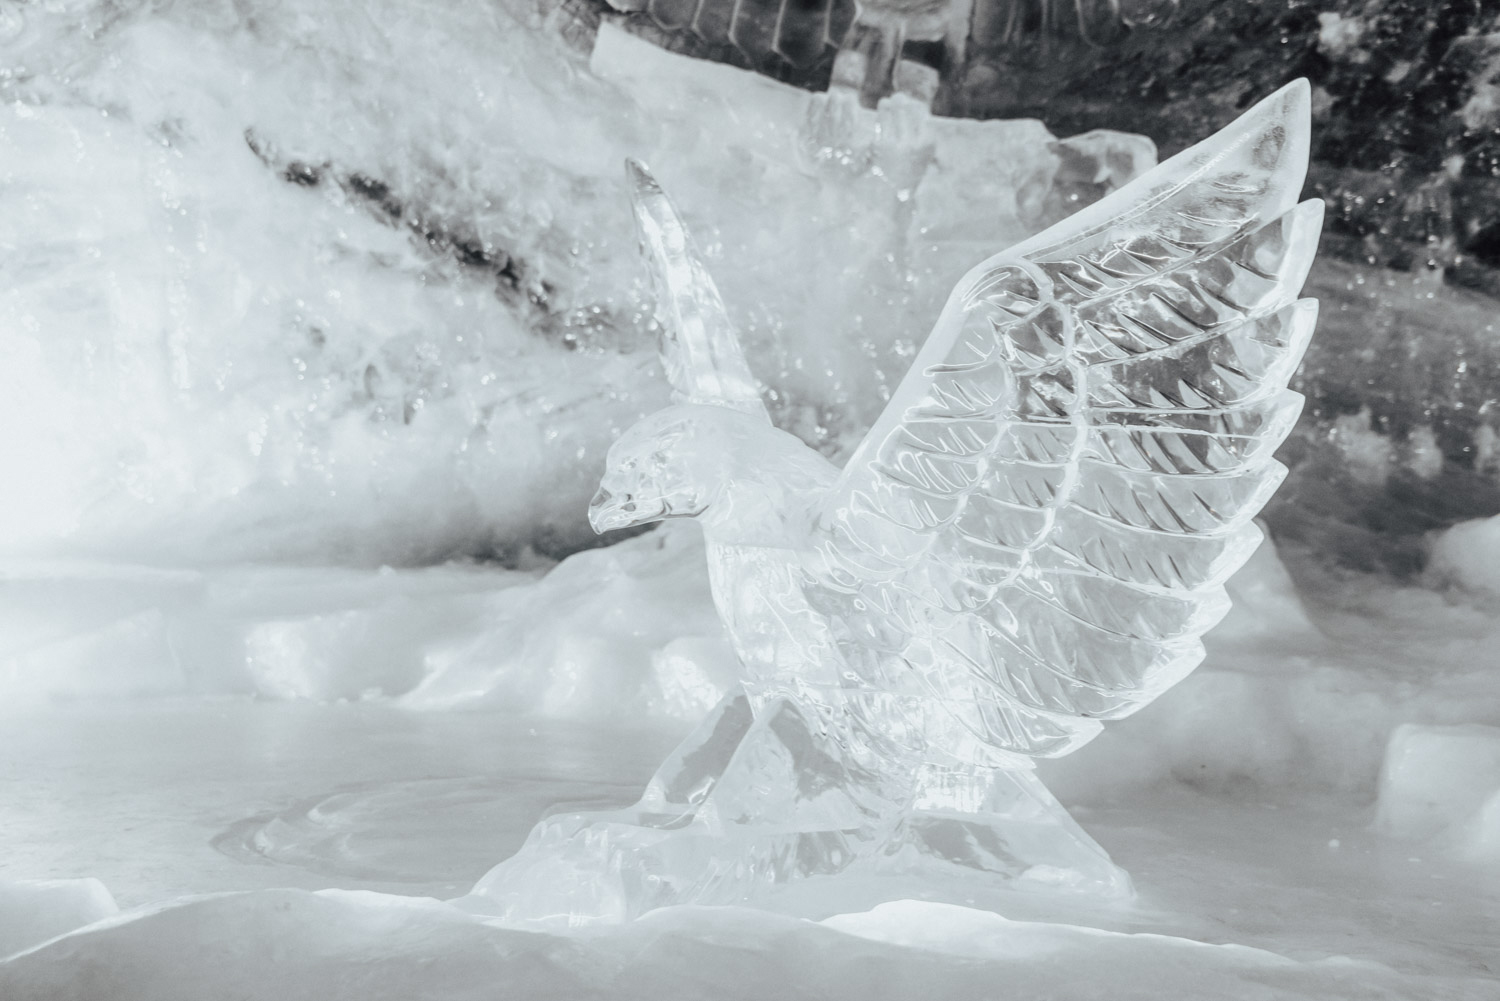 Ice Sculptures at Glacier Palace | Things to Do in Zermatt